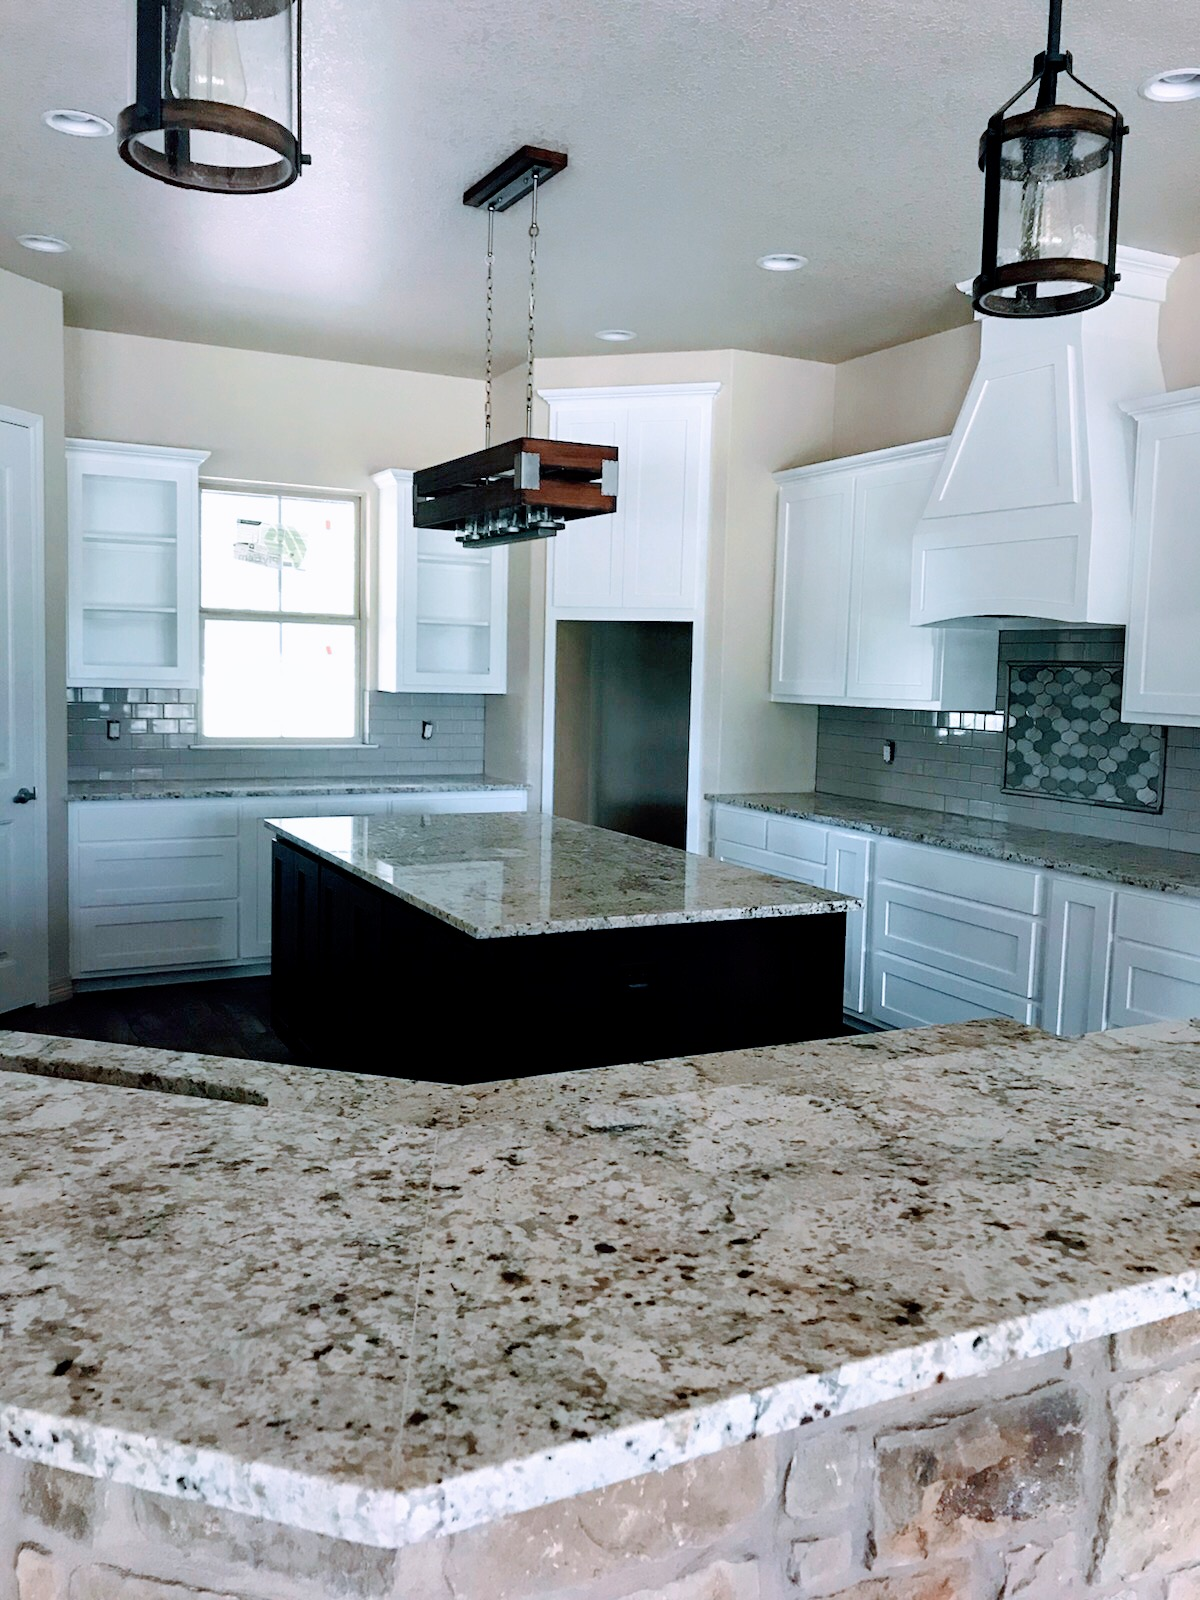 Countertops - Home Page